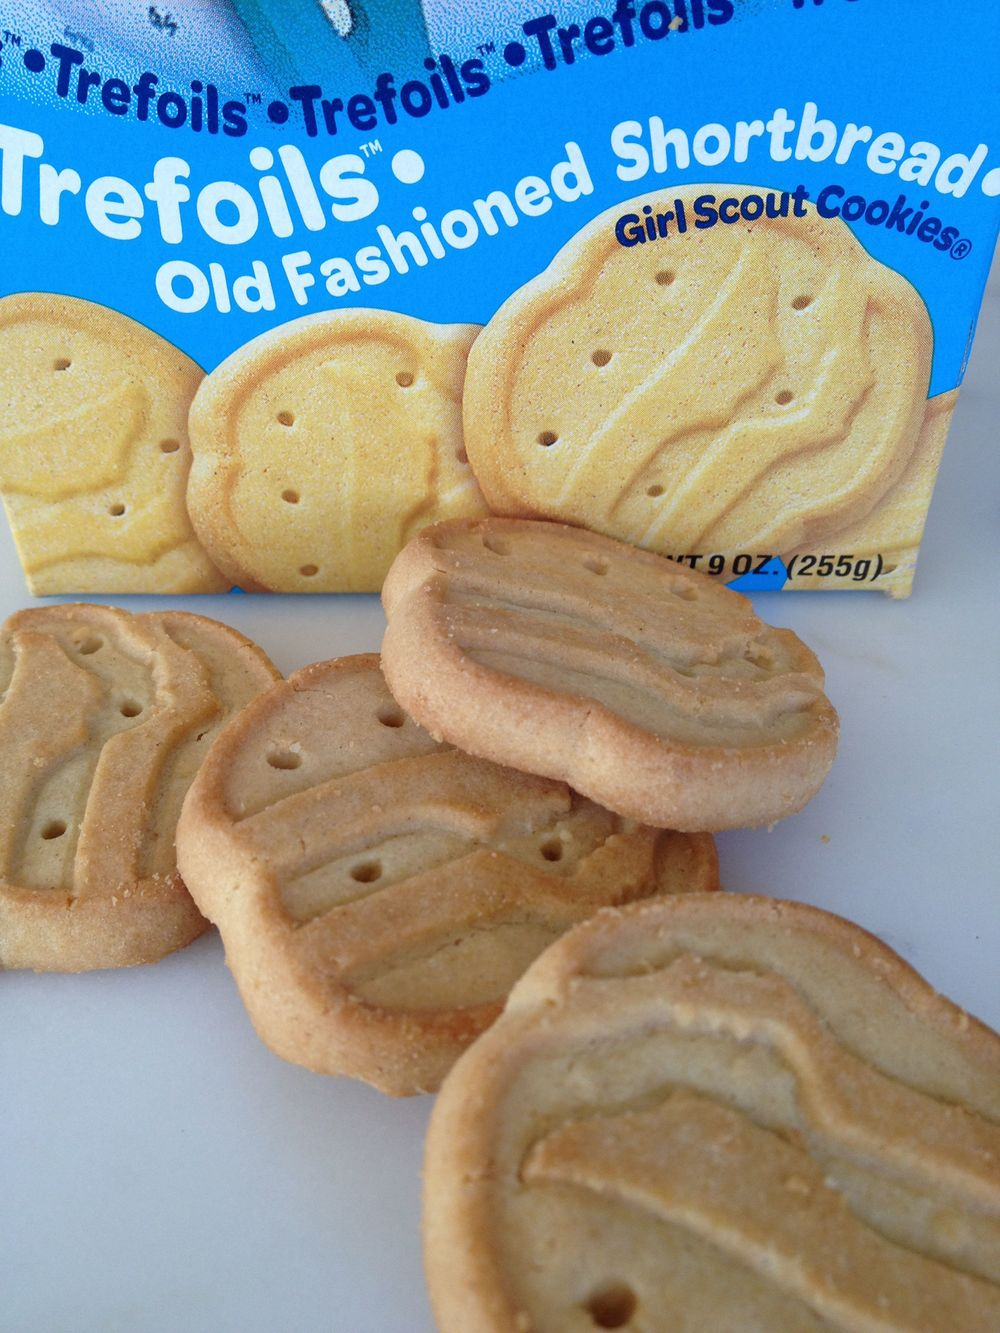 GODDAMMIT I WANT SOME MORE TREFOILS! GIRL SCOUTS, GET AT ME!!!